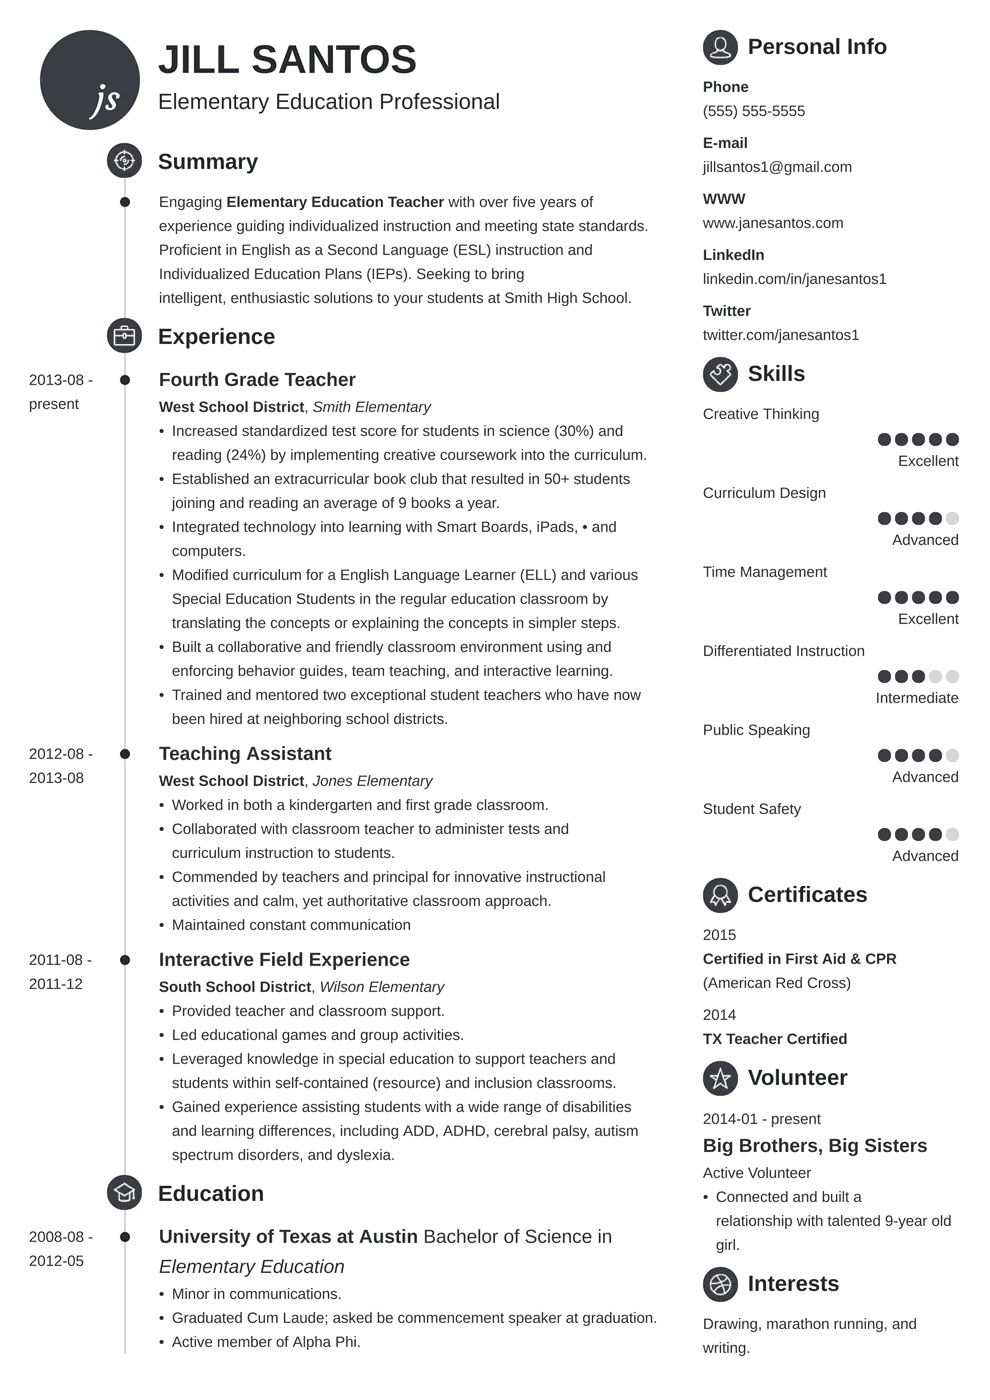 005 Remarkable Resume Template For Teacher Example  Free Download Australia Microsoft Word 2007Full